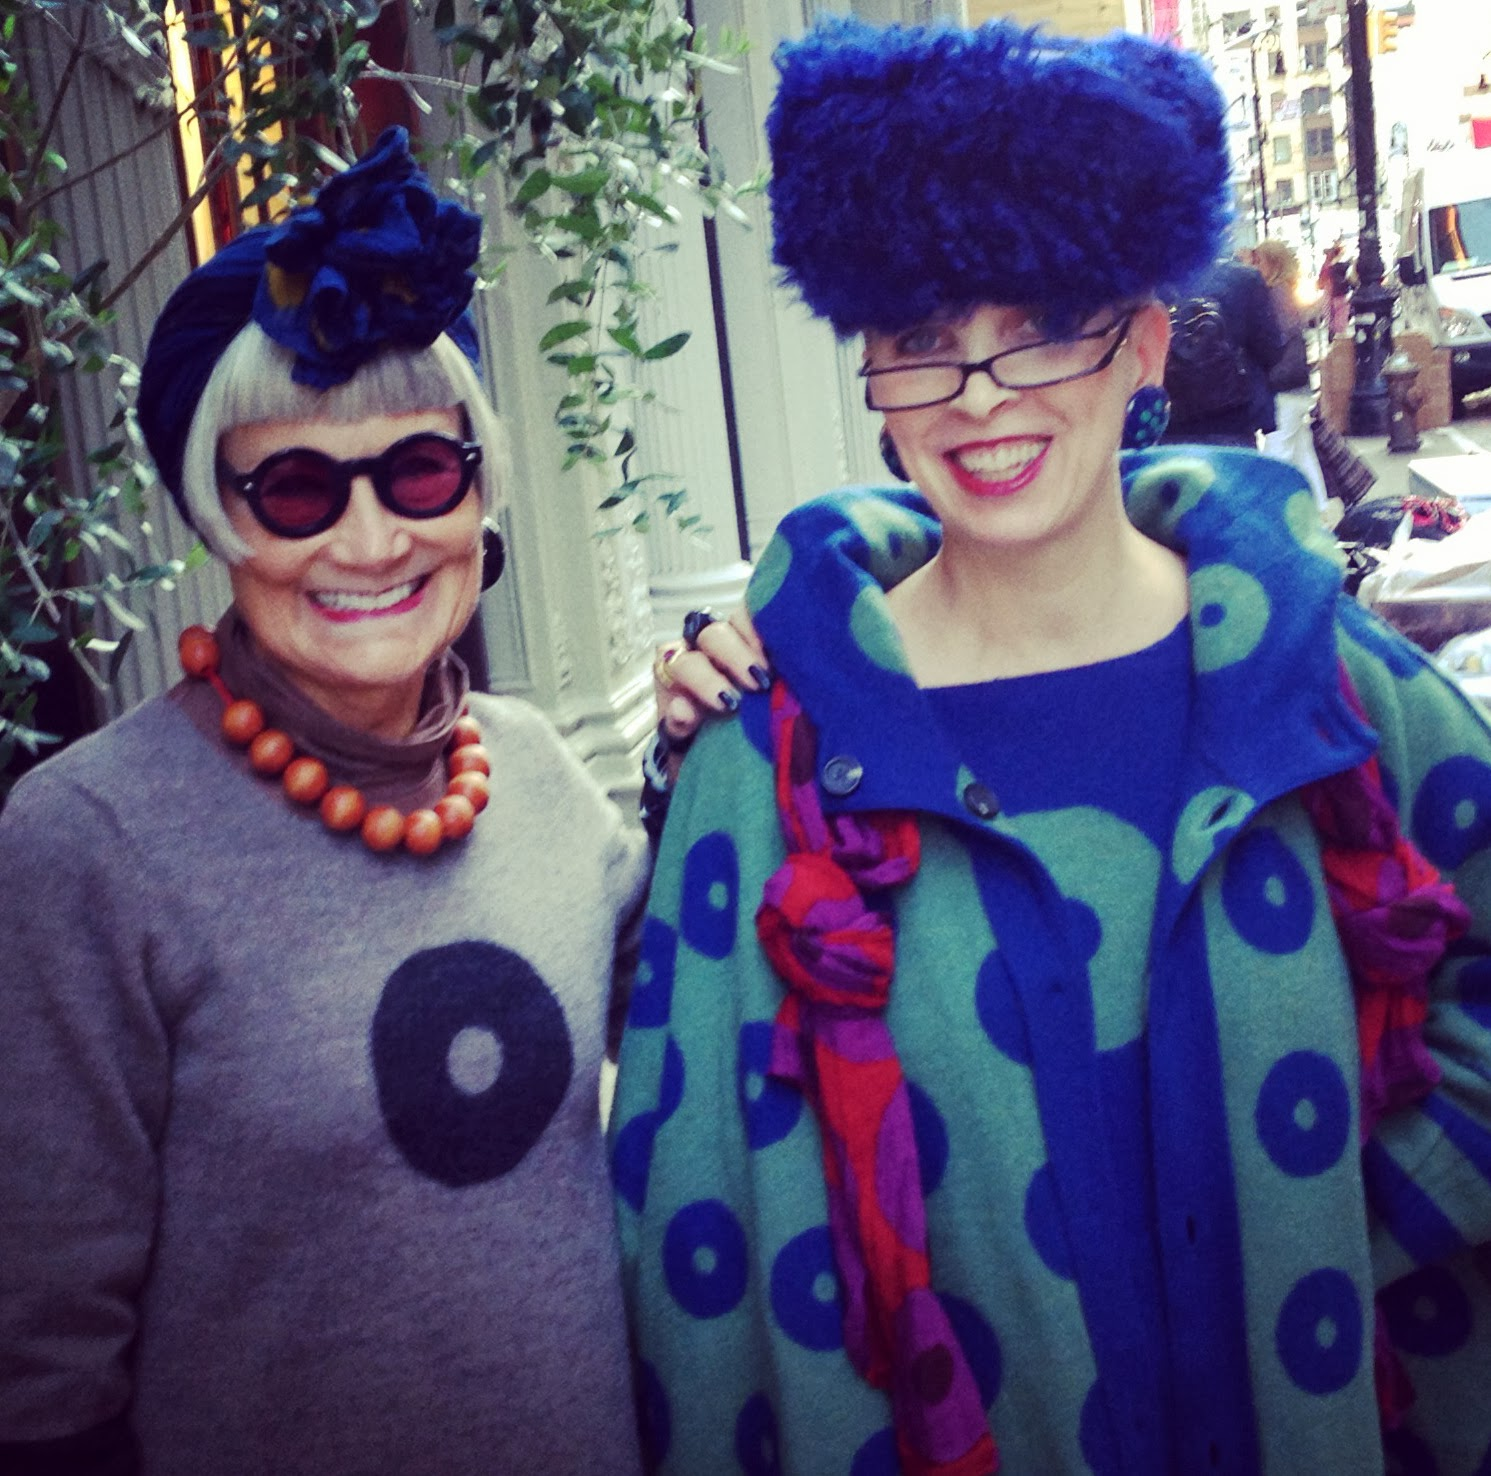 Valerie Idiosyncratic Instagram Rubin: Idiosyncratic Fashionistas: Winter With A Swedish Accent